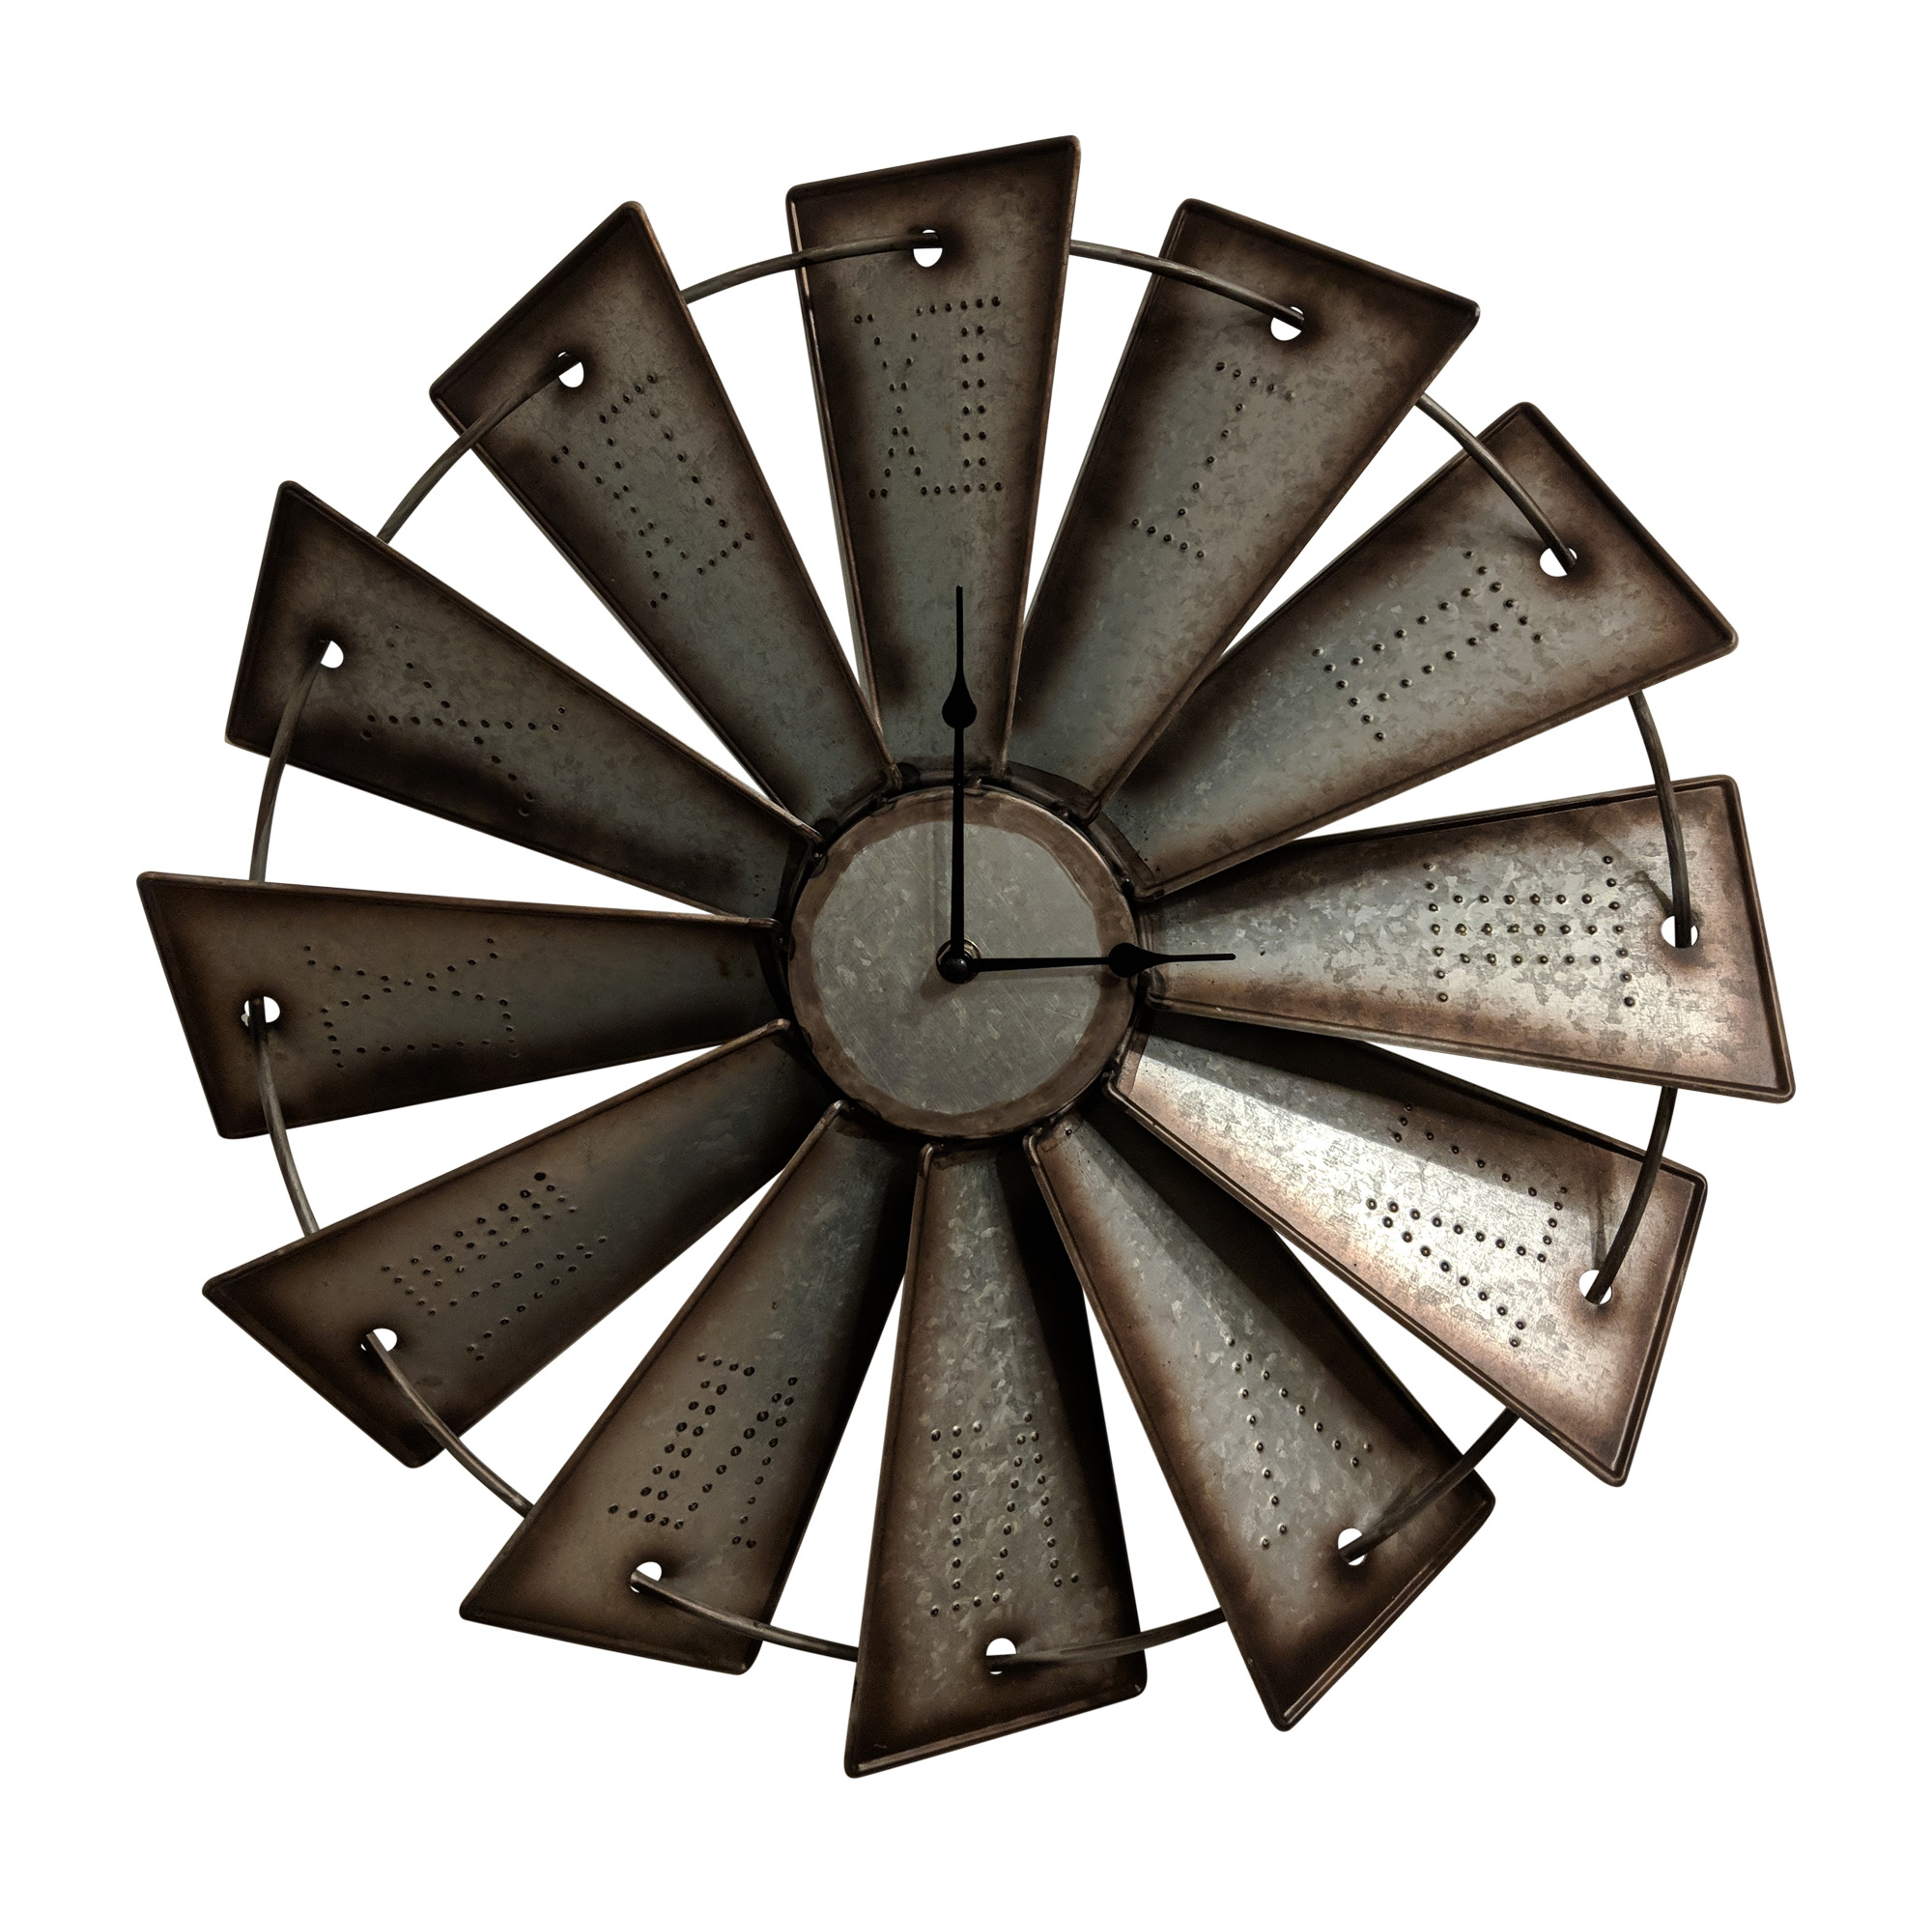 Gianna's Home Rustic Farmhouse Metal Windmill Wall Clock 18 1/2 in.